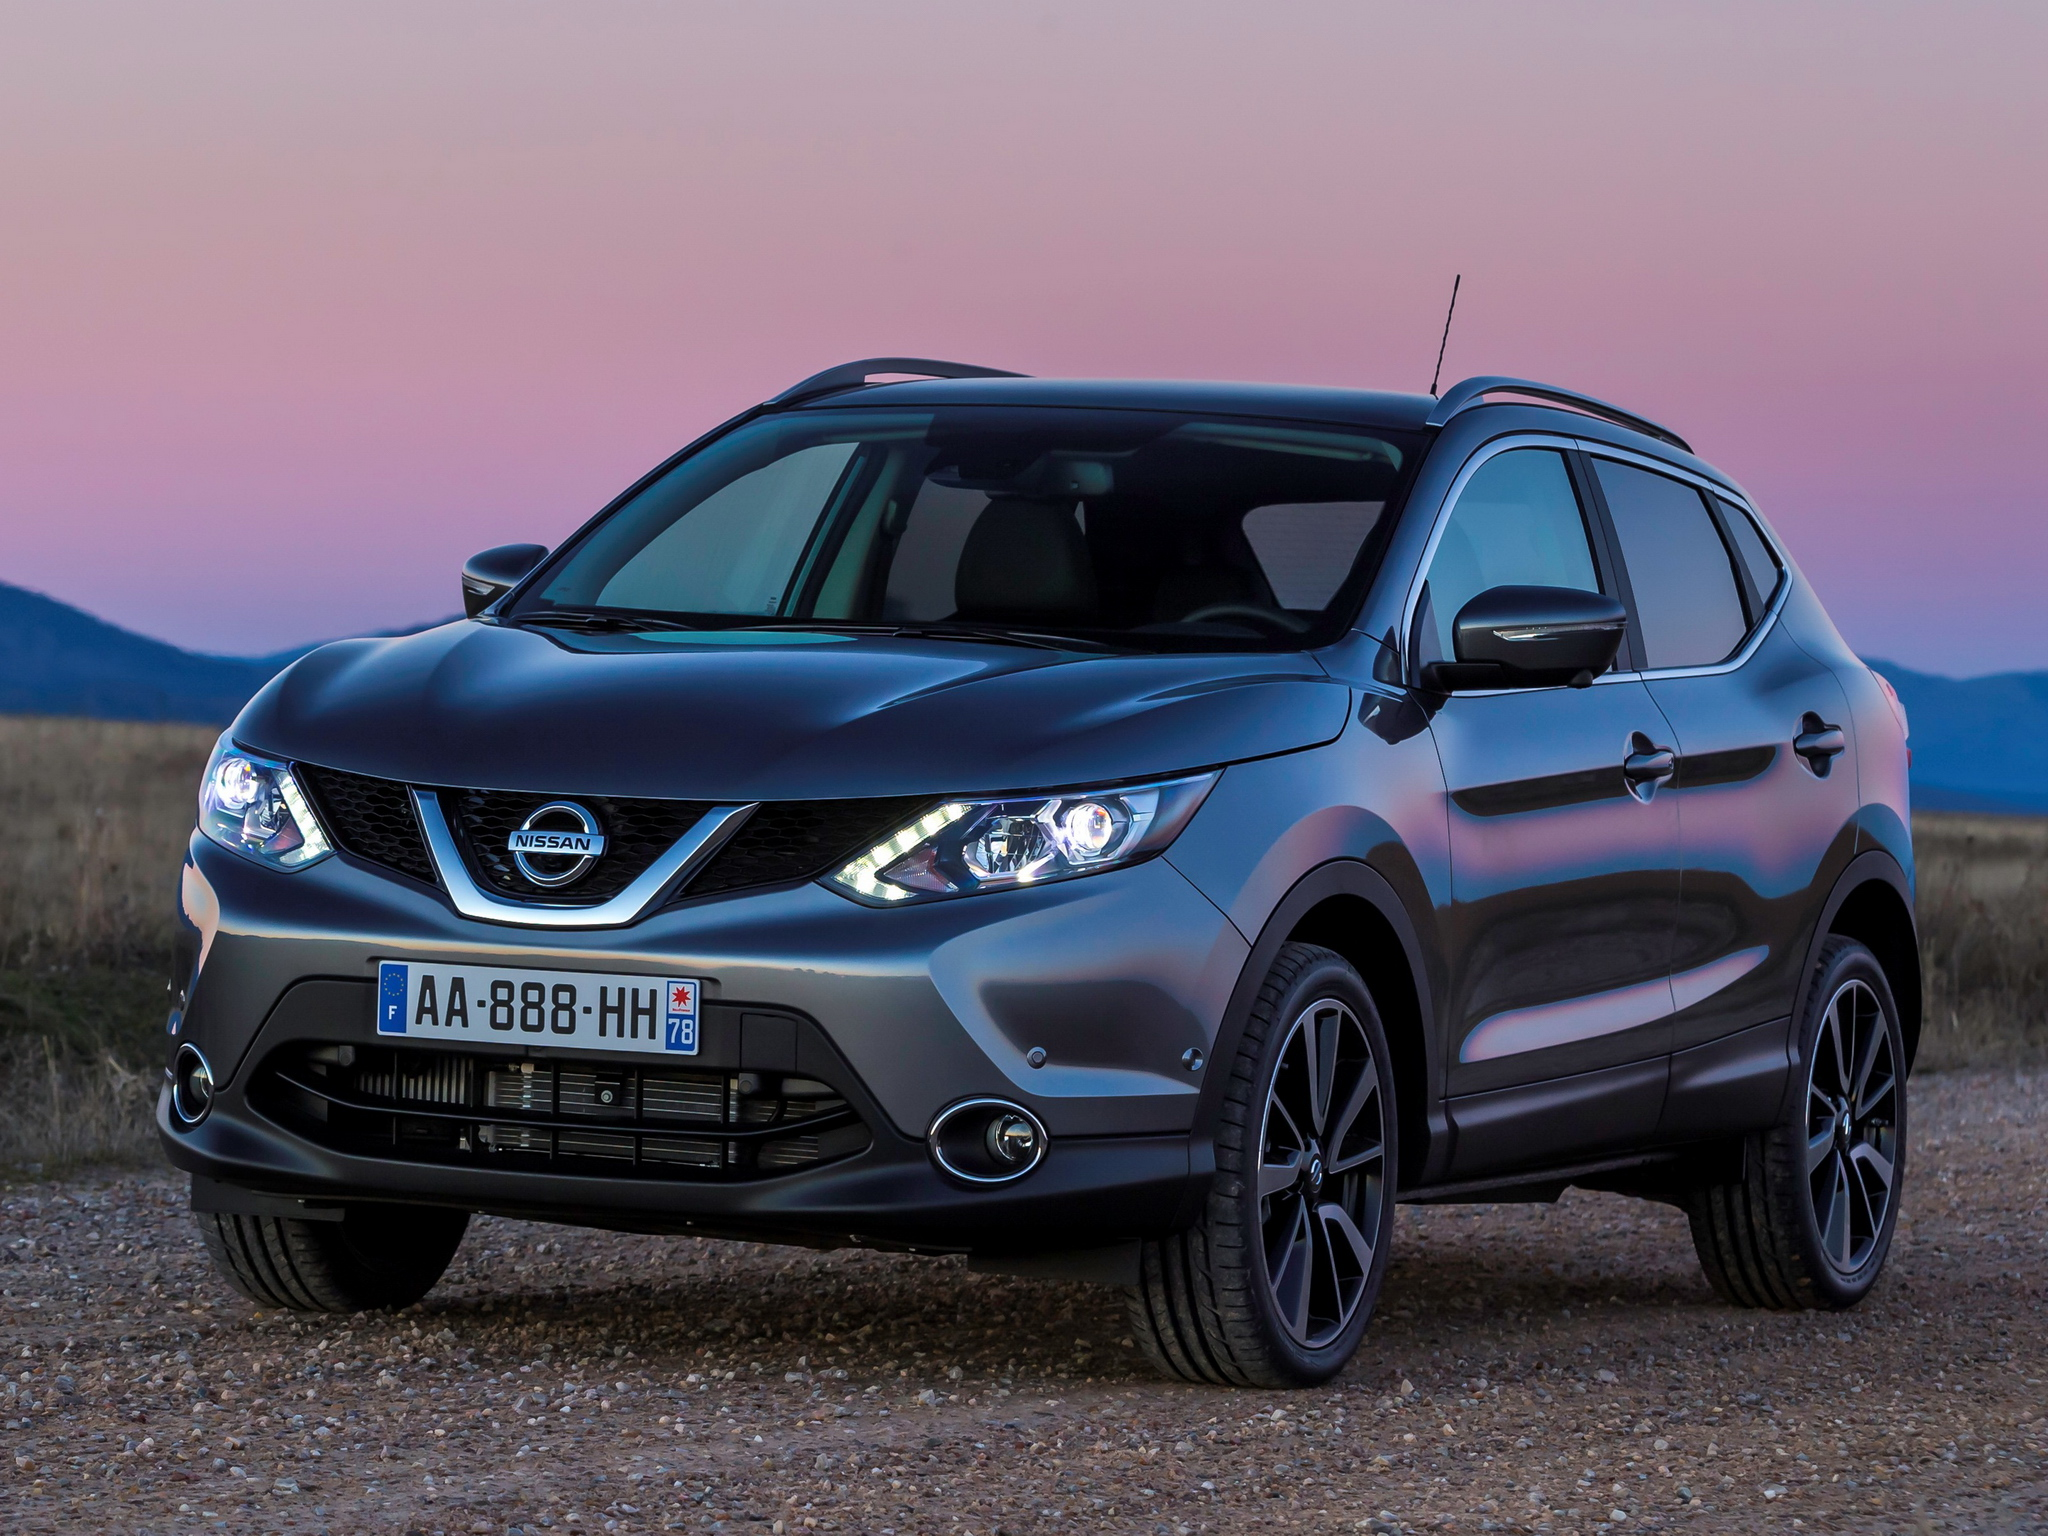 2014 nissan qashqai suv g wallpaper 2048x1536 221621. Black Bedroom Furniture Sets. Home Design Ideas